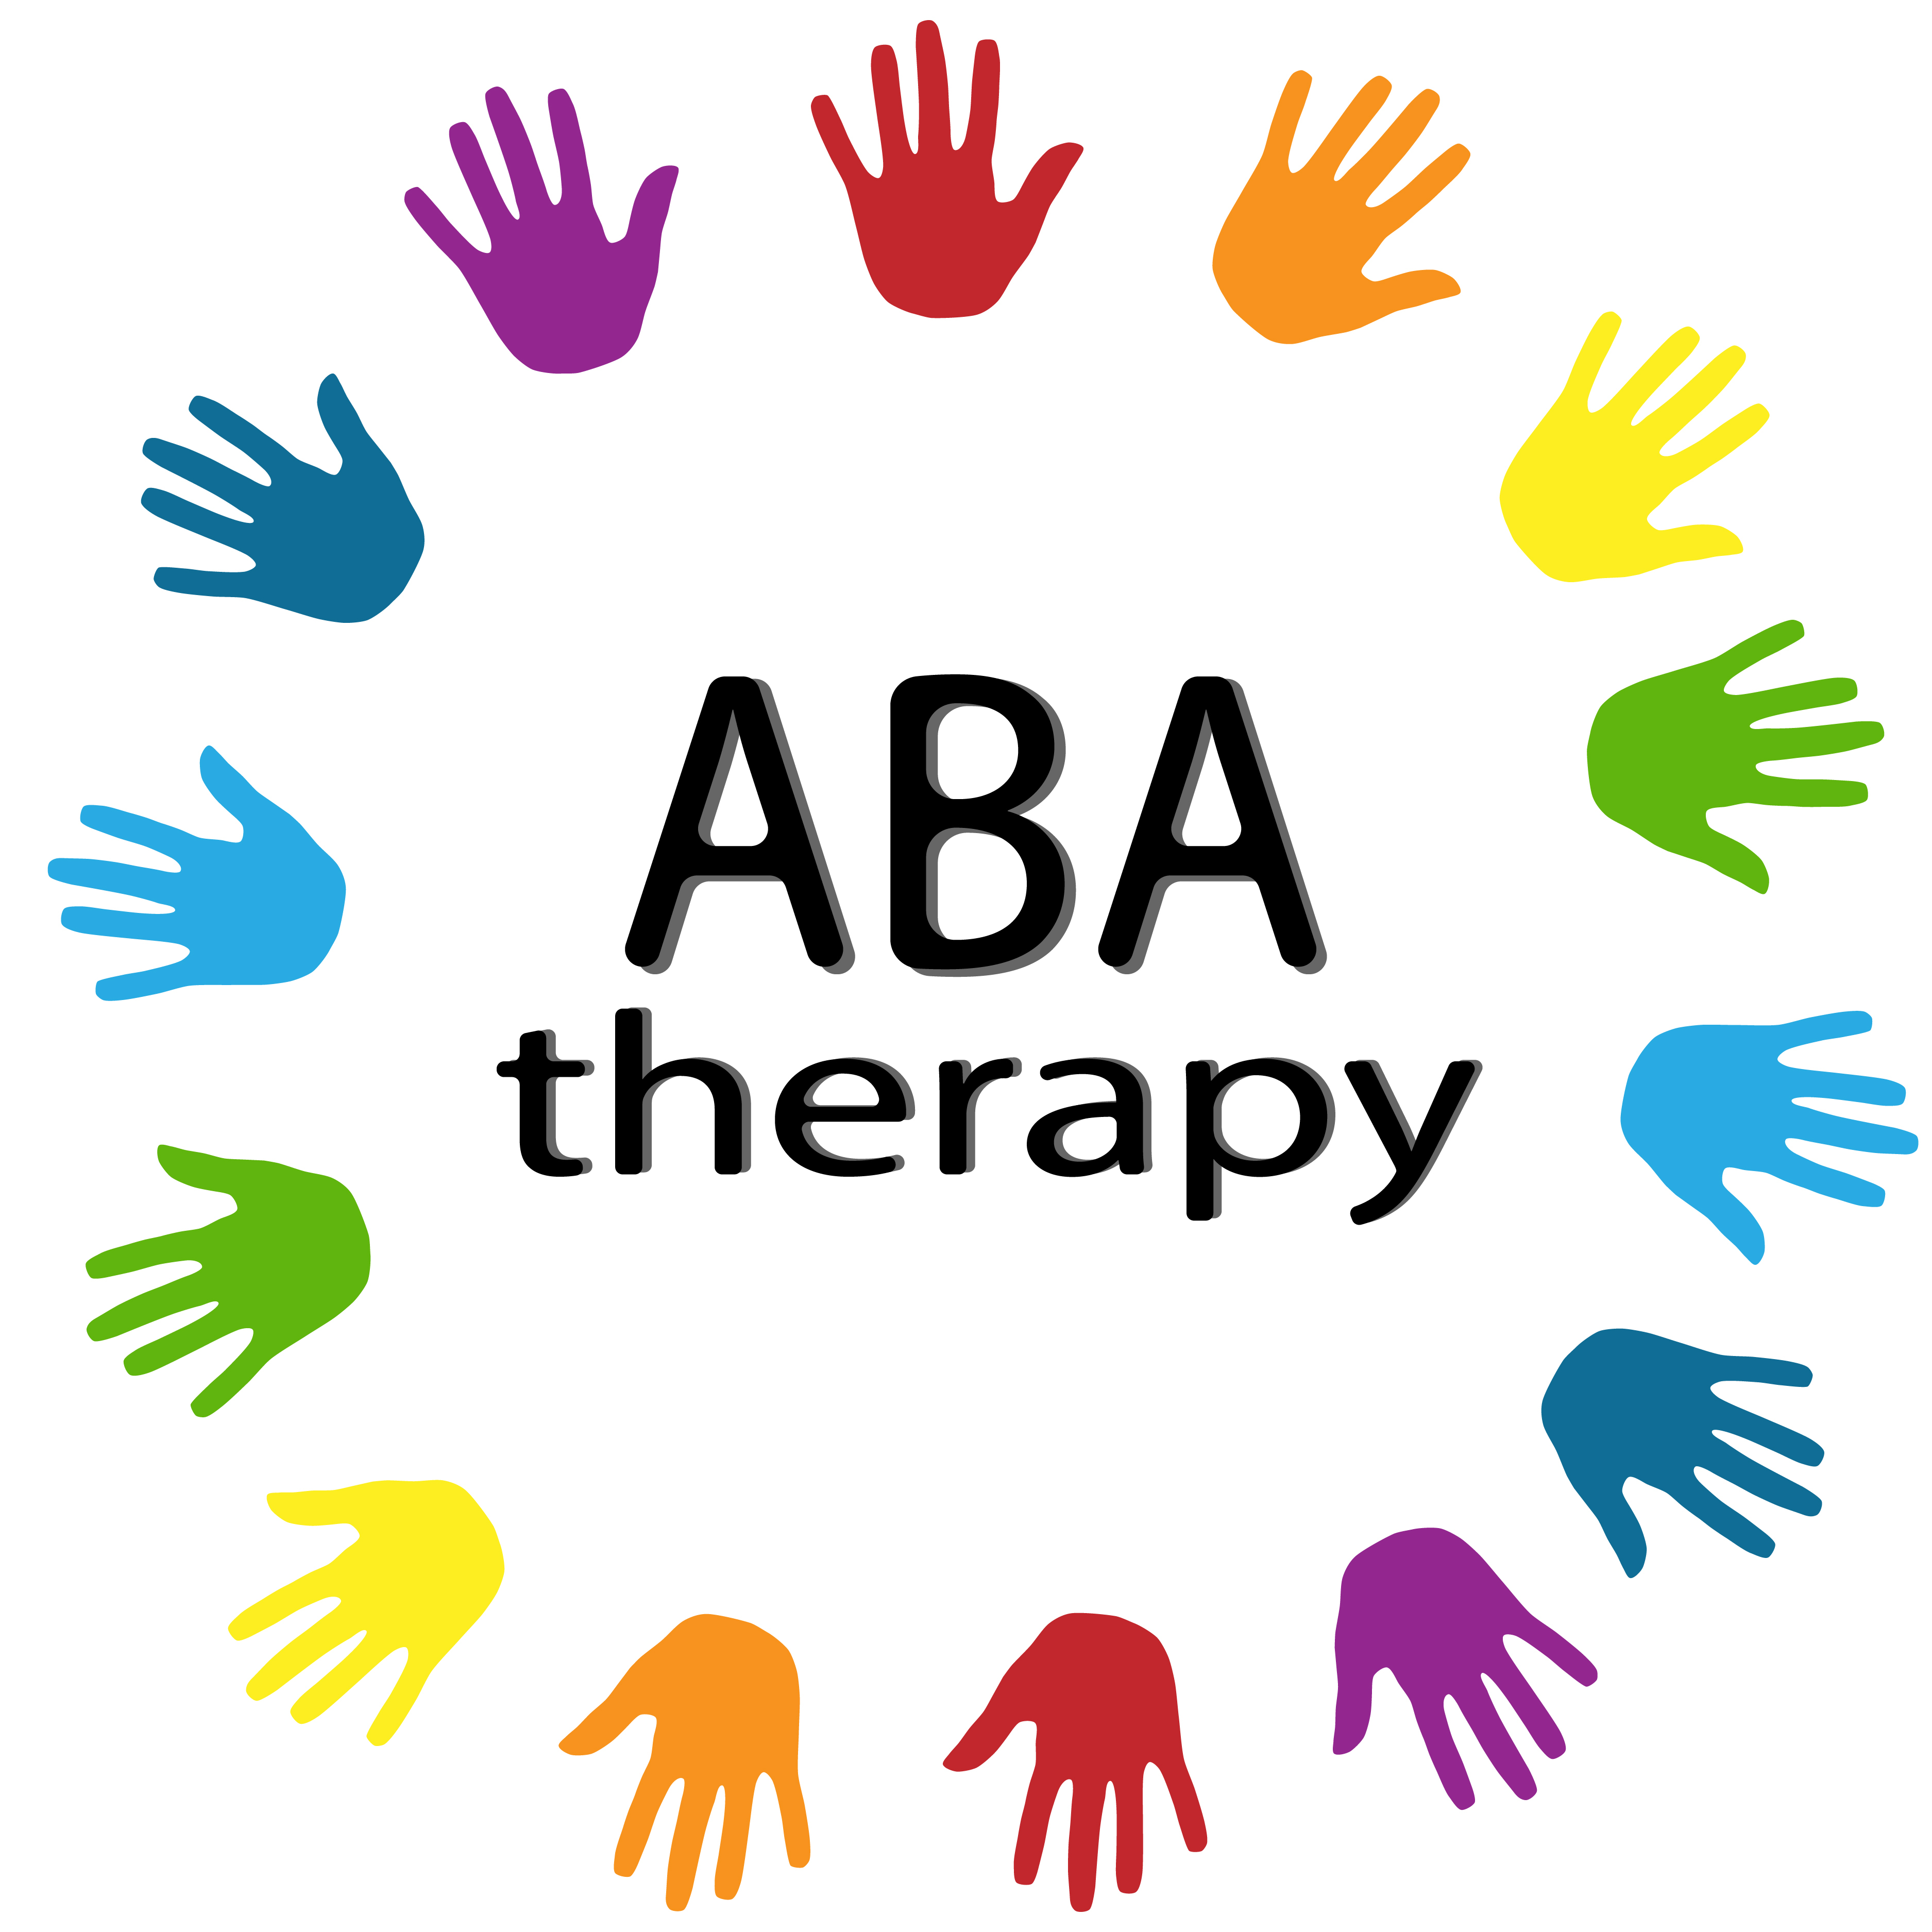 aba therapy